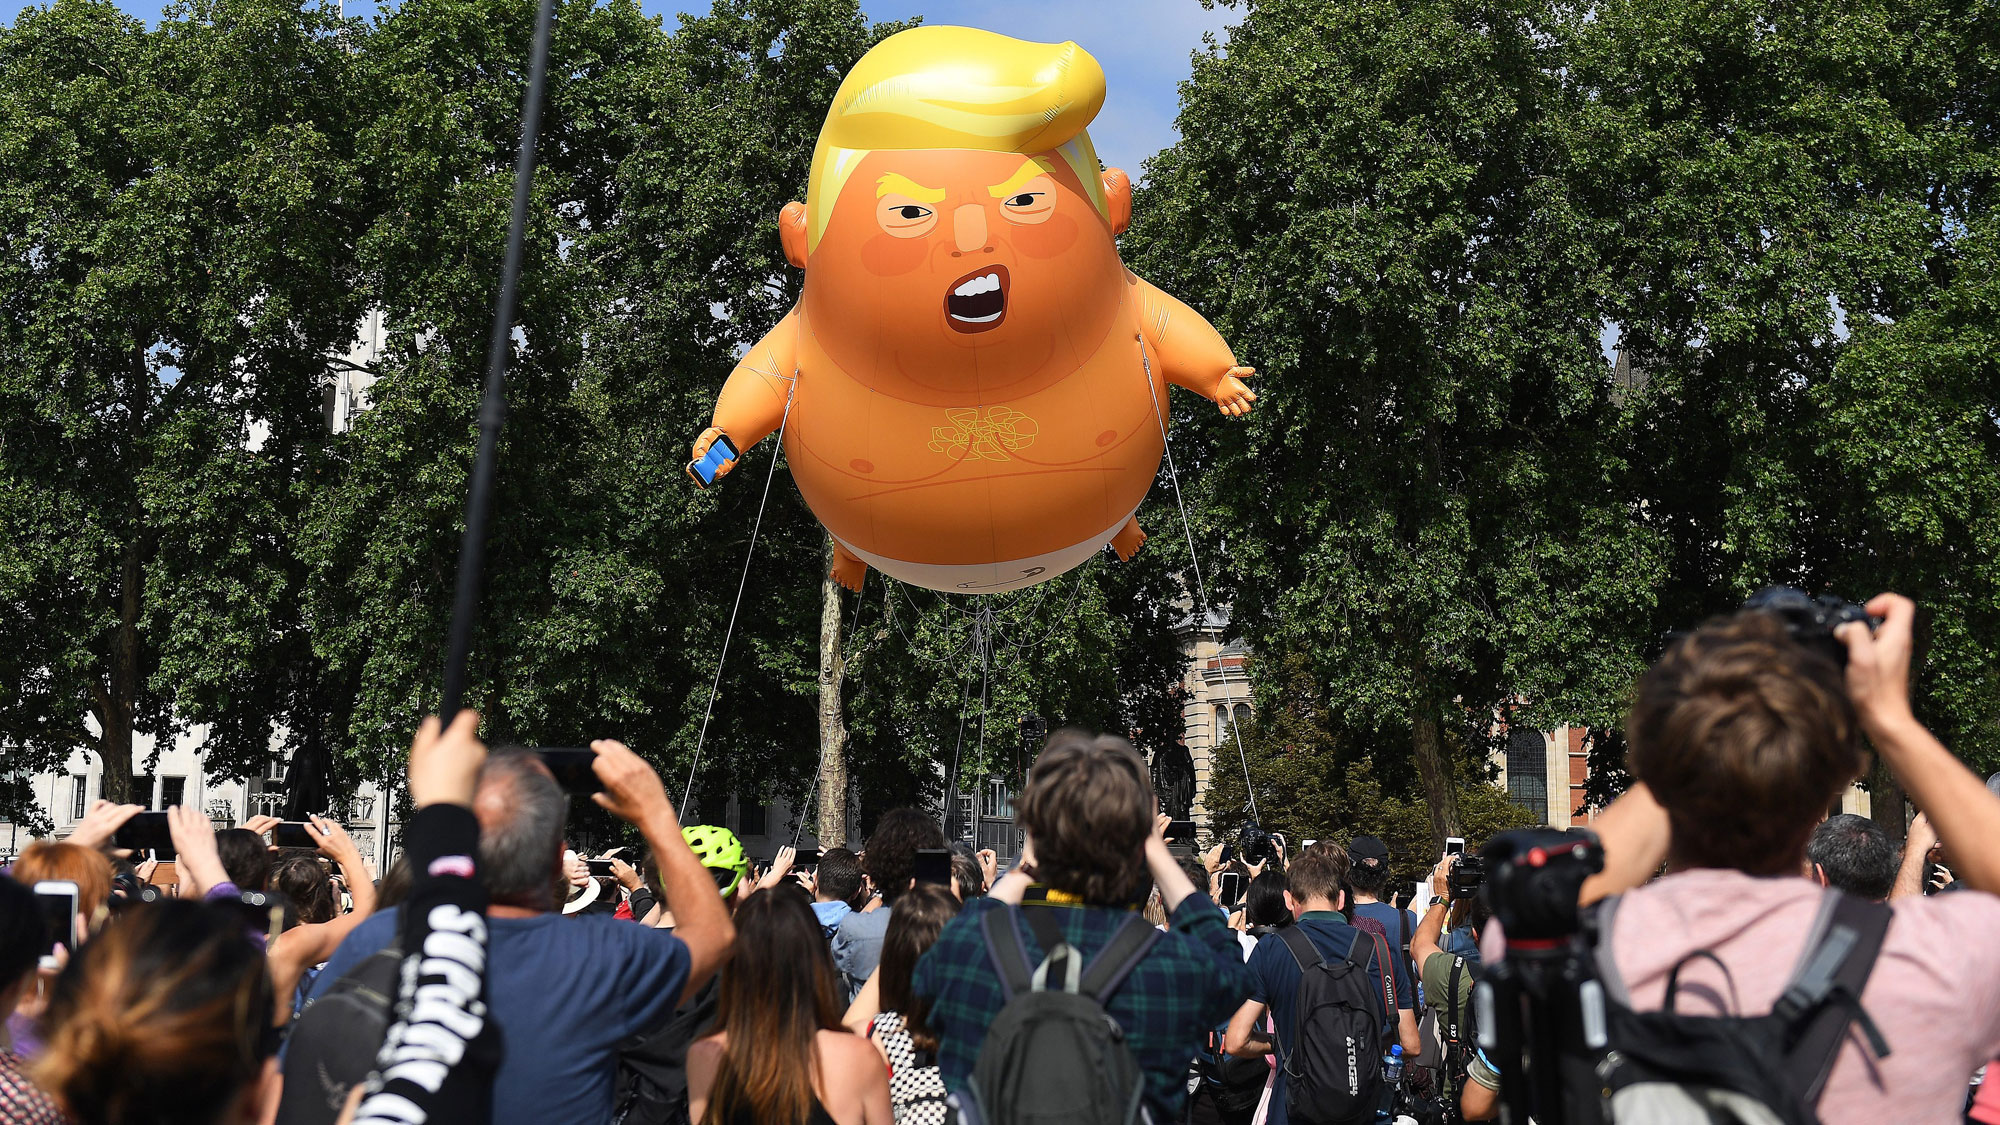 Brits protest Trump on his visit to UK